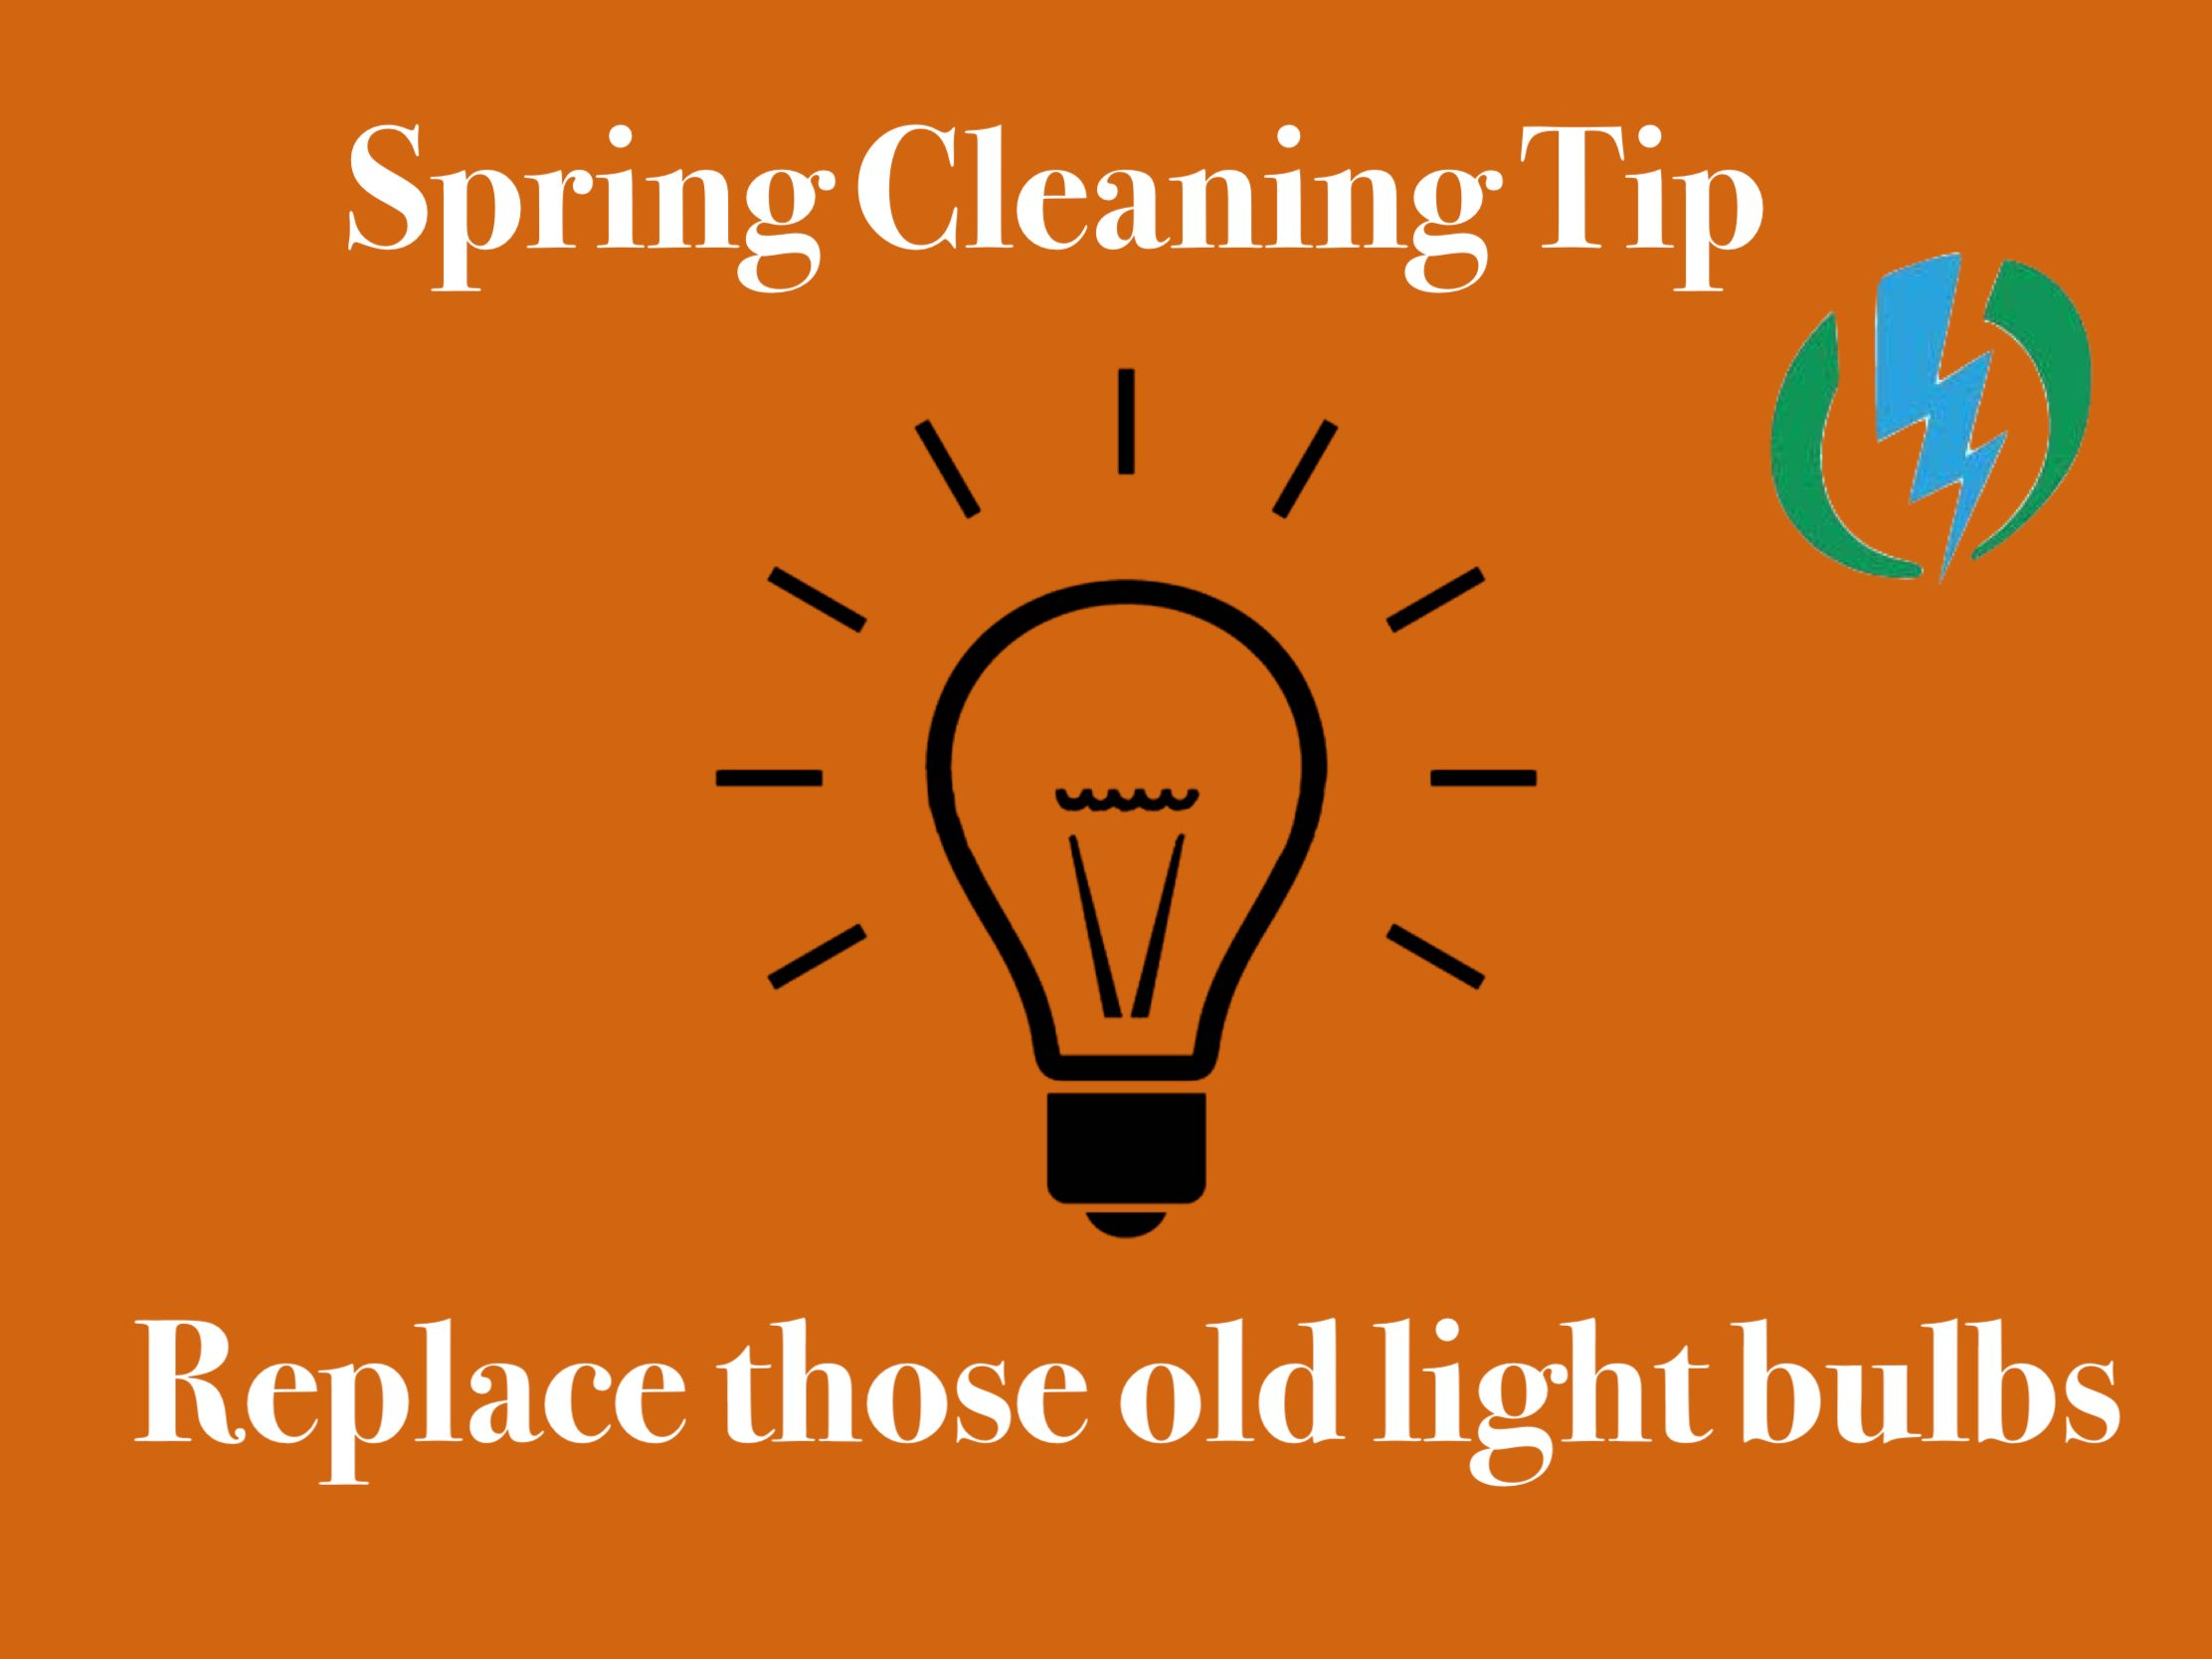 Spring Cleaning: Replace Those Old Light Bulbs